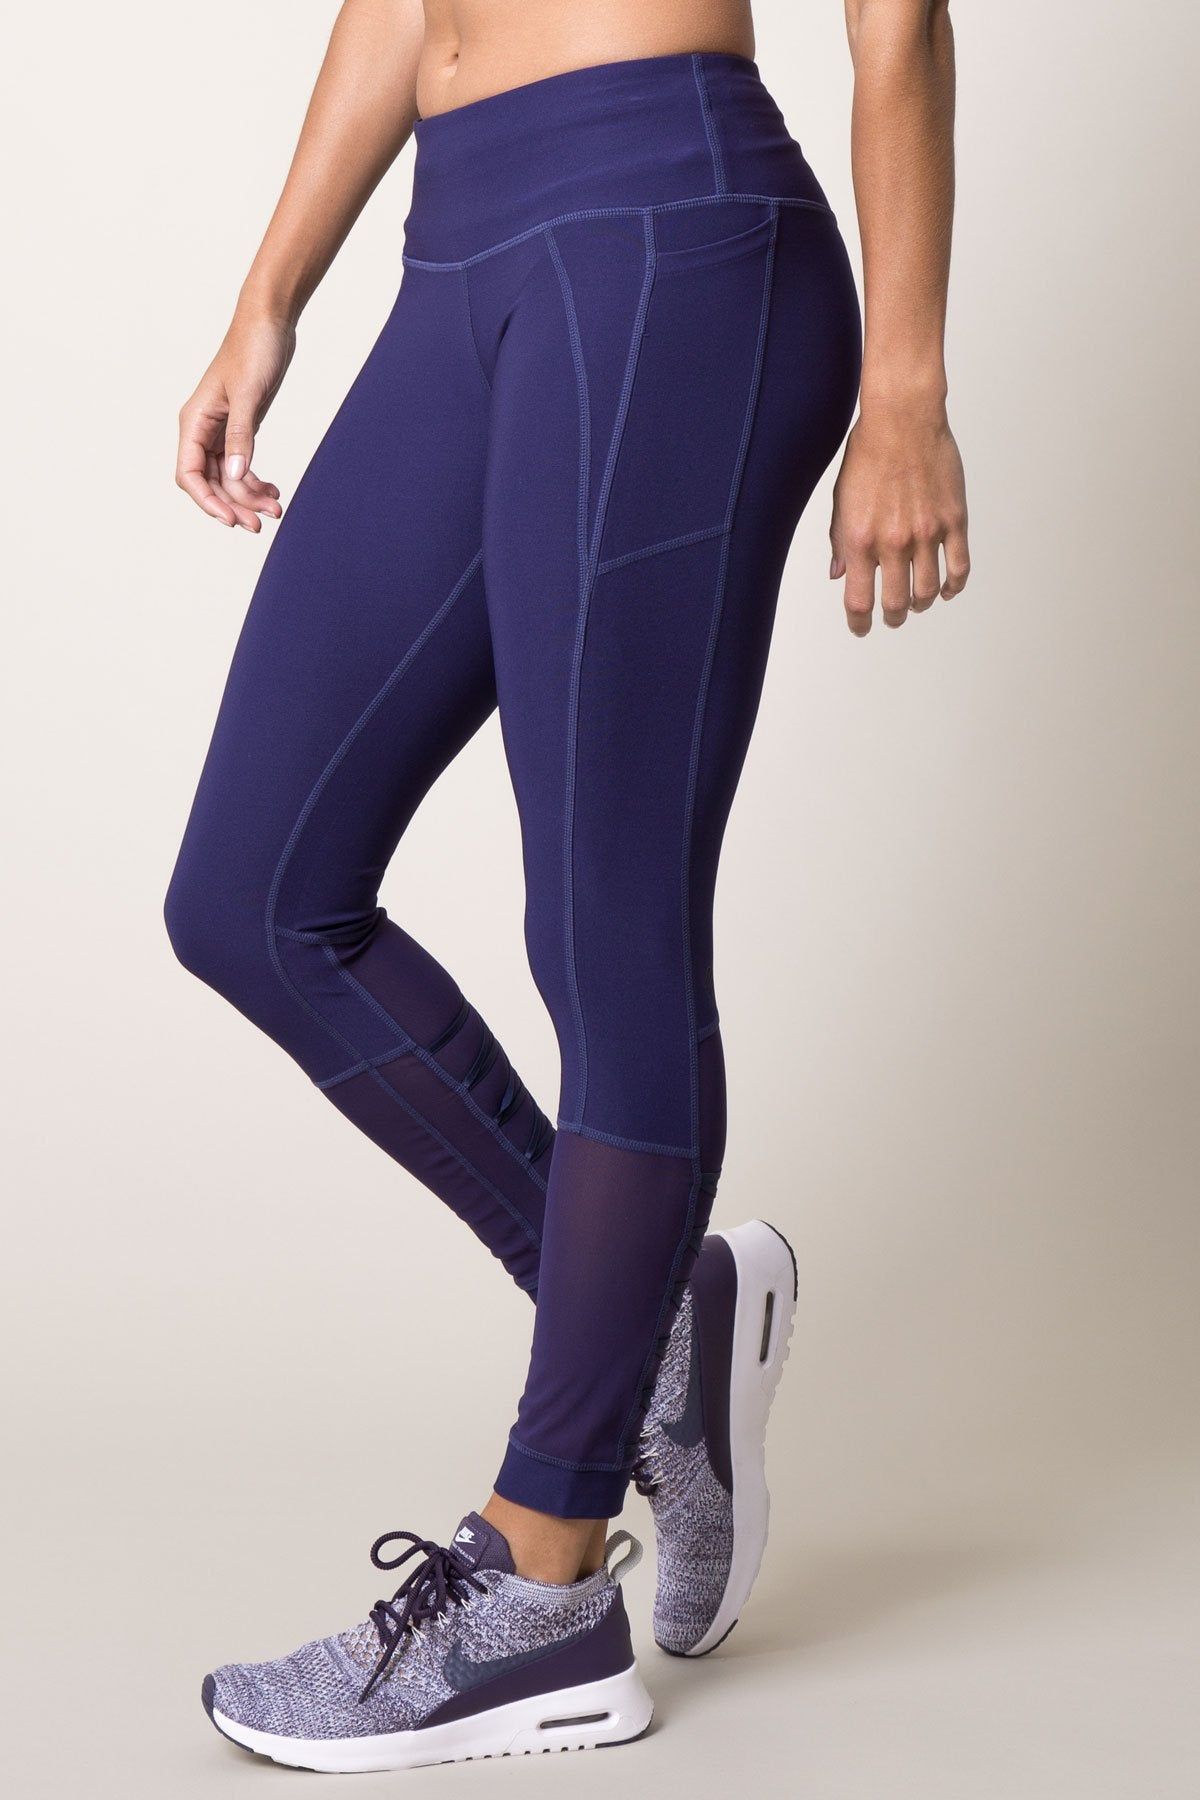 Emulate 7/8 Lace-Up Mesh leggings by MPG Sport